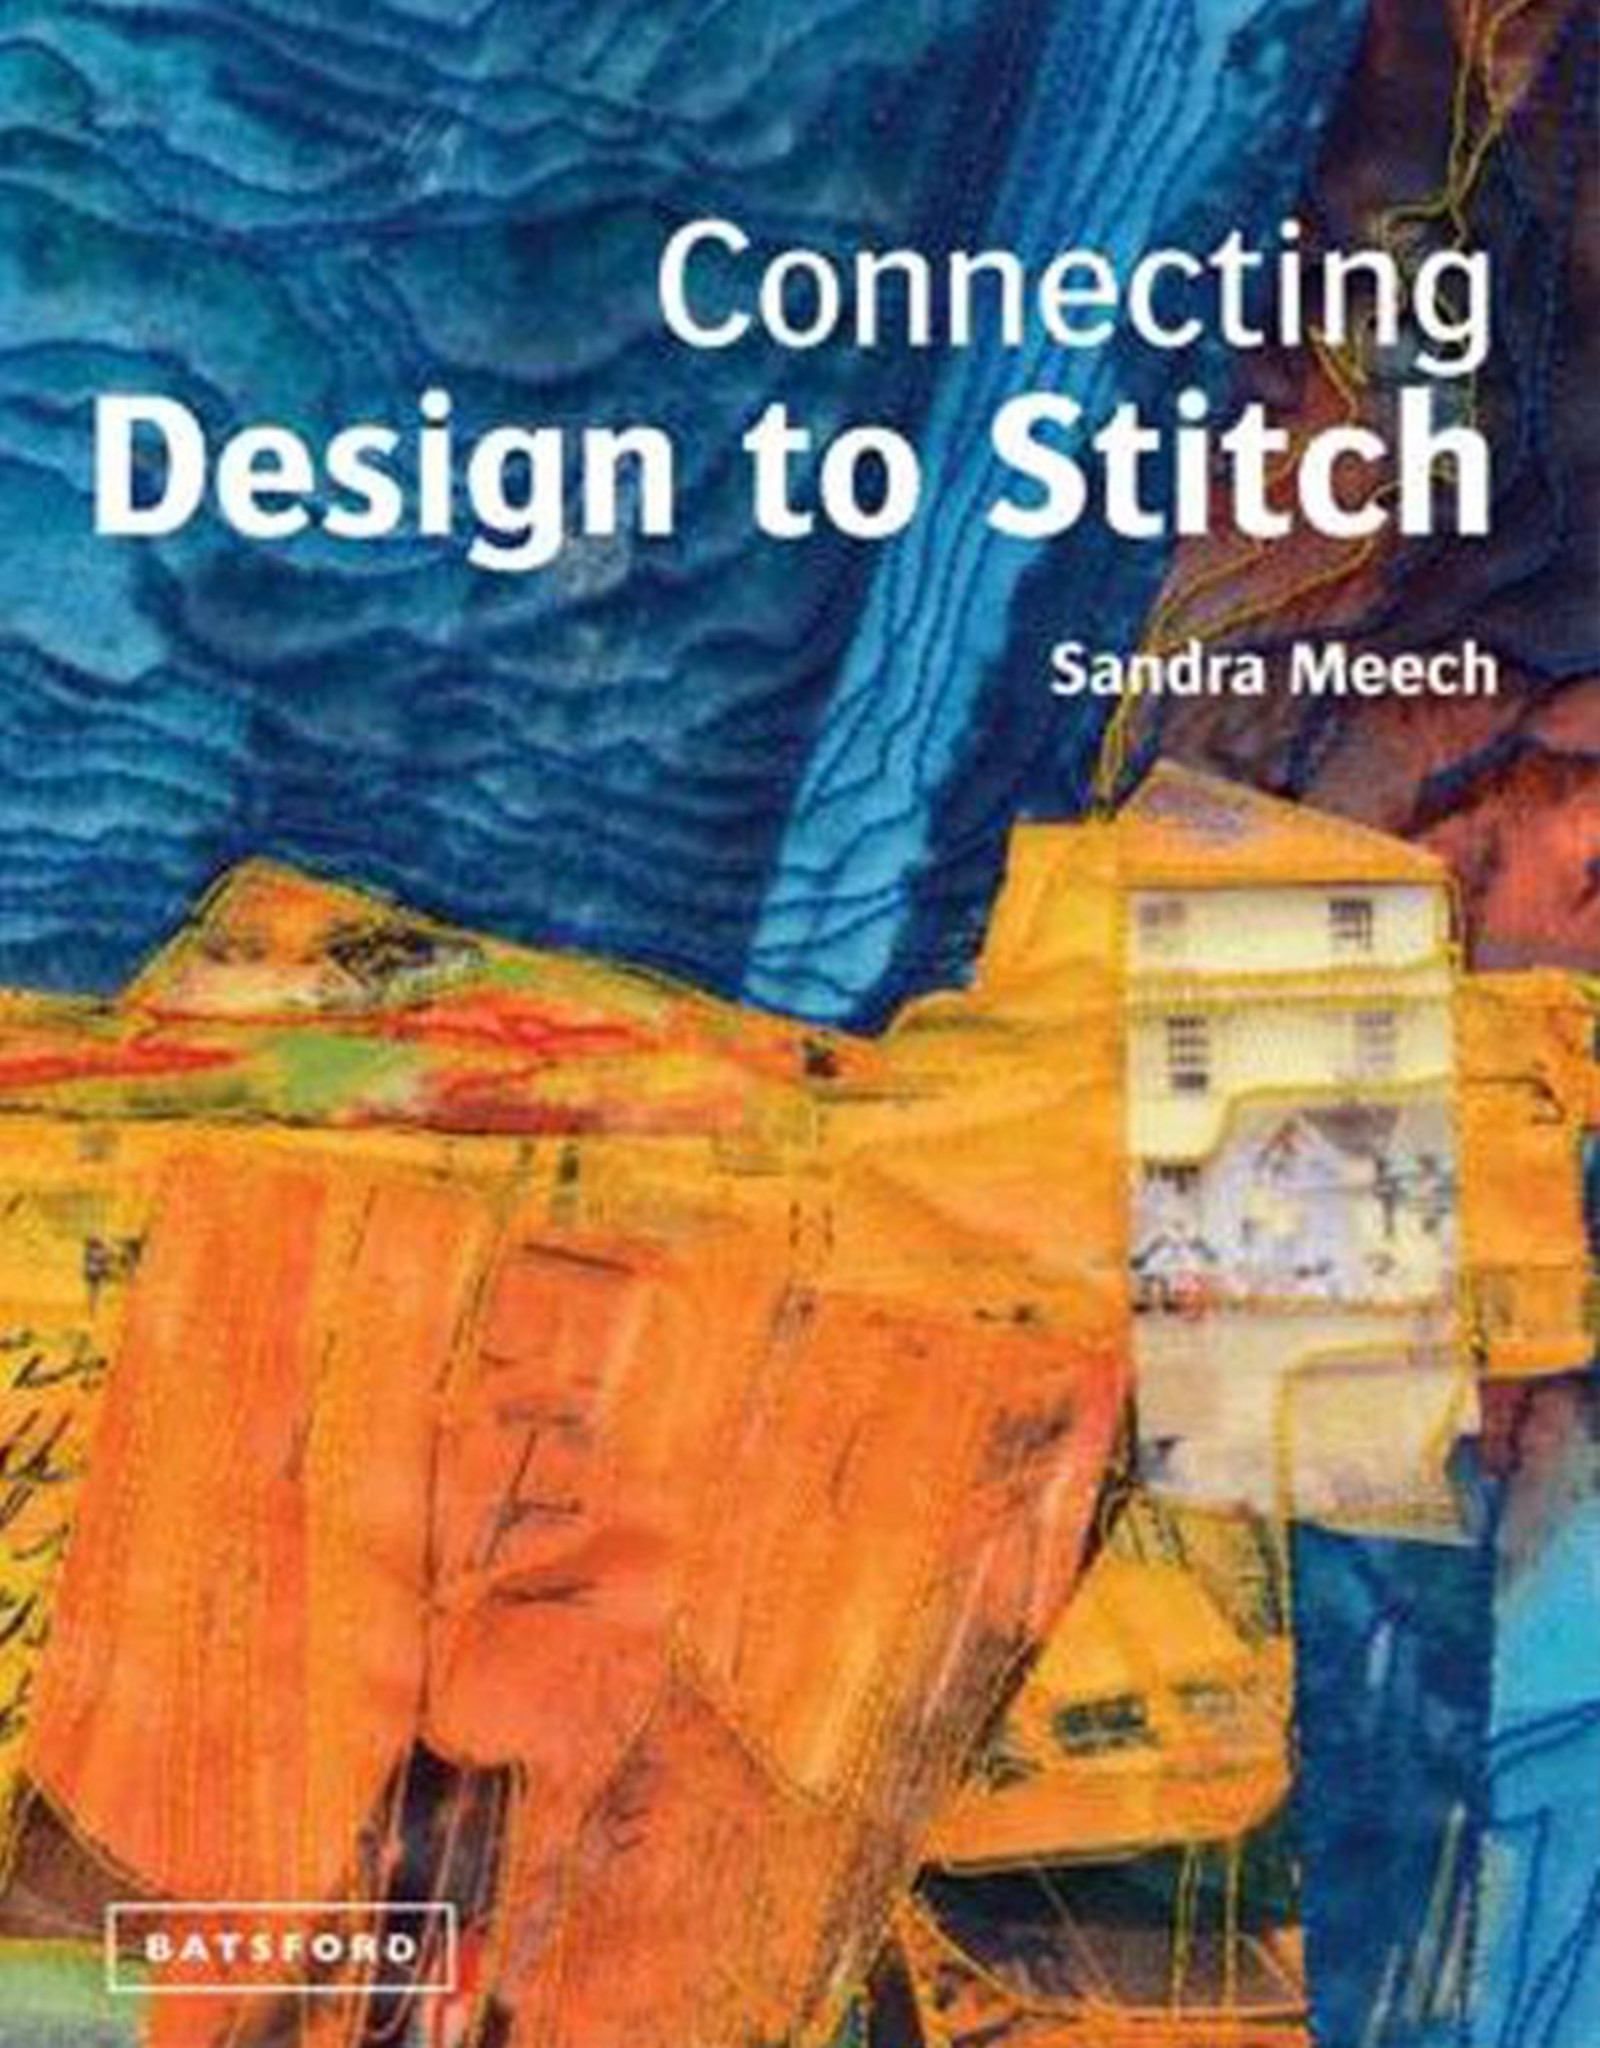 Connecting Design to Stitch / Sandra Meech